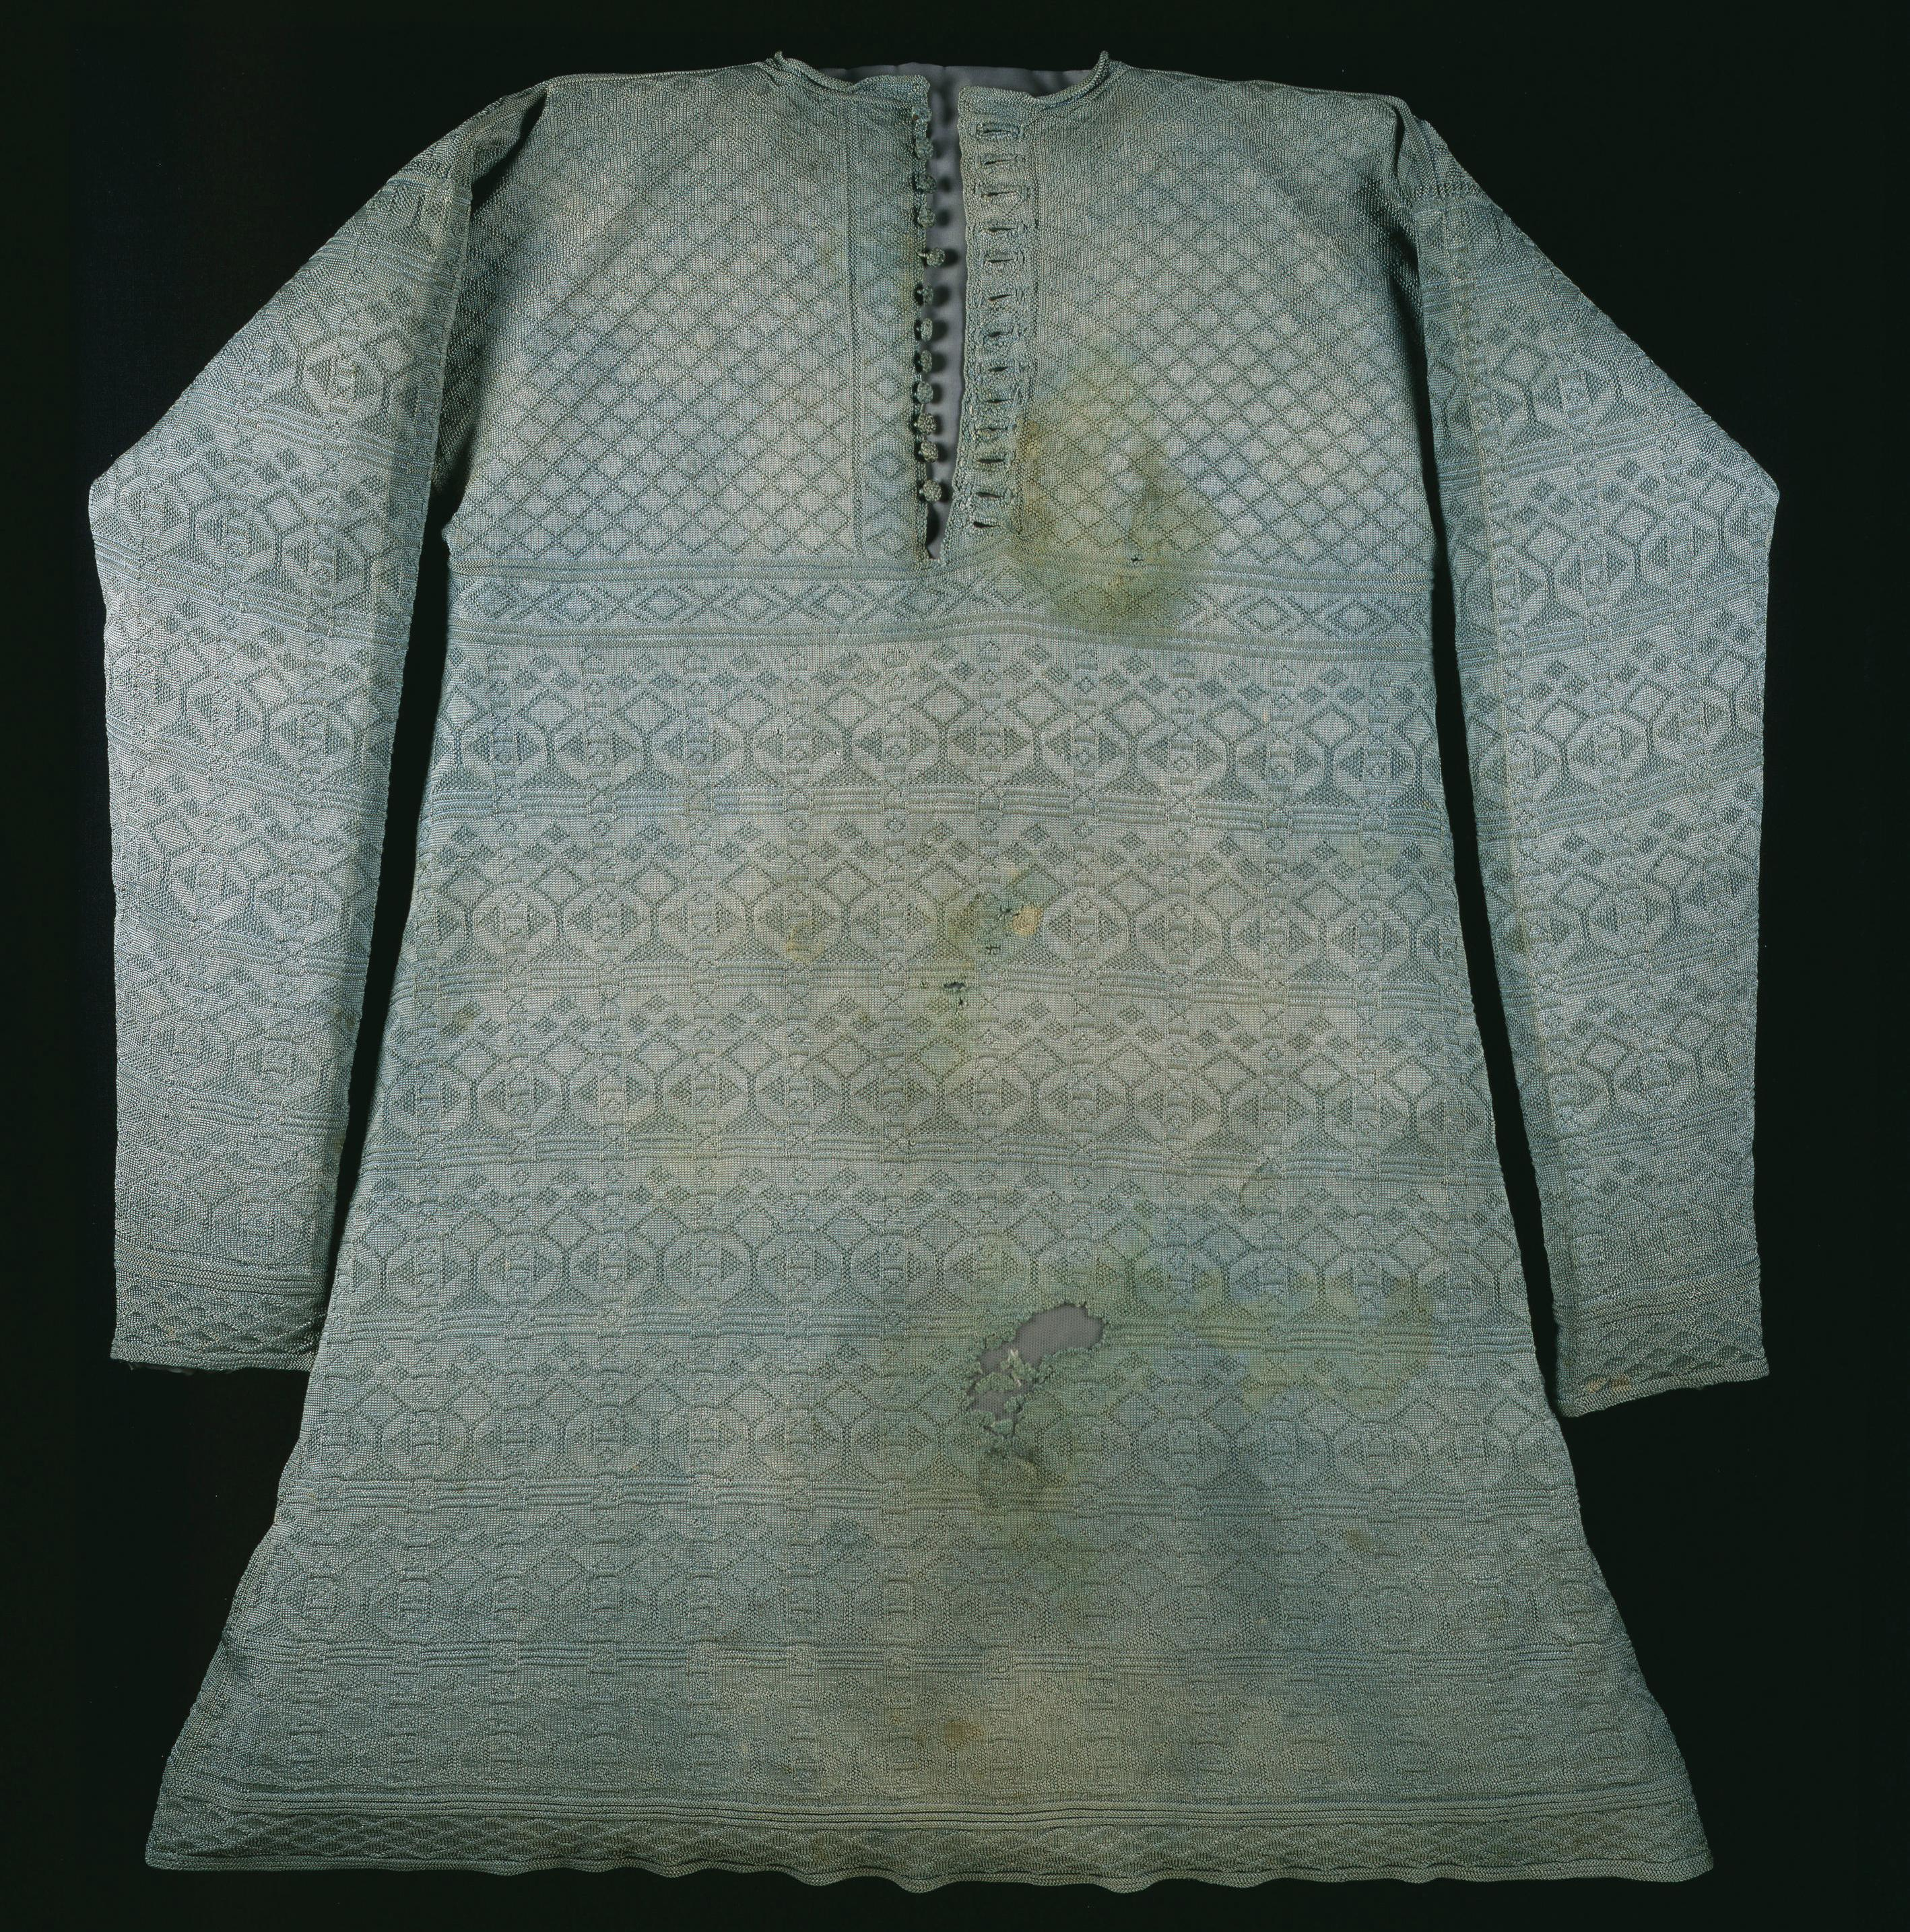 Shirt worn by Charles I for his execution to go on display in London